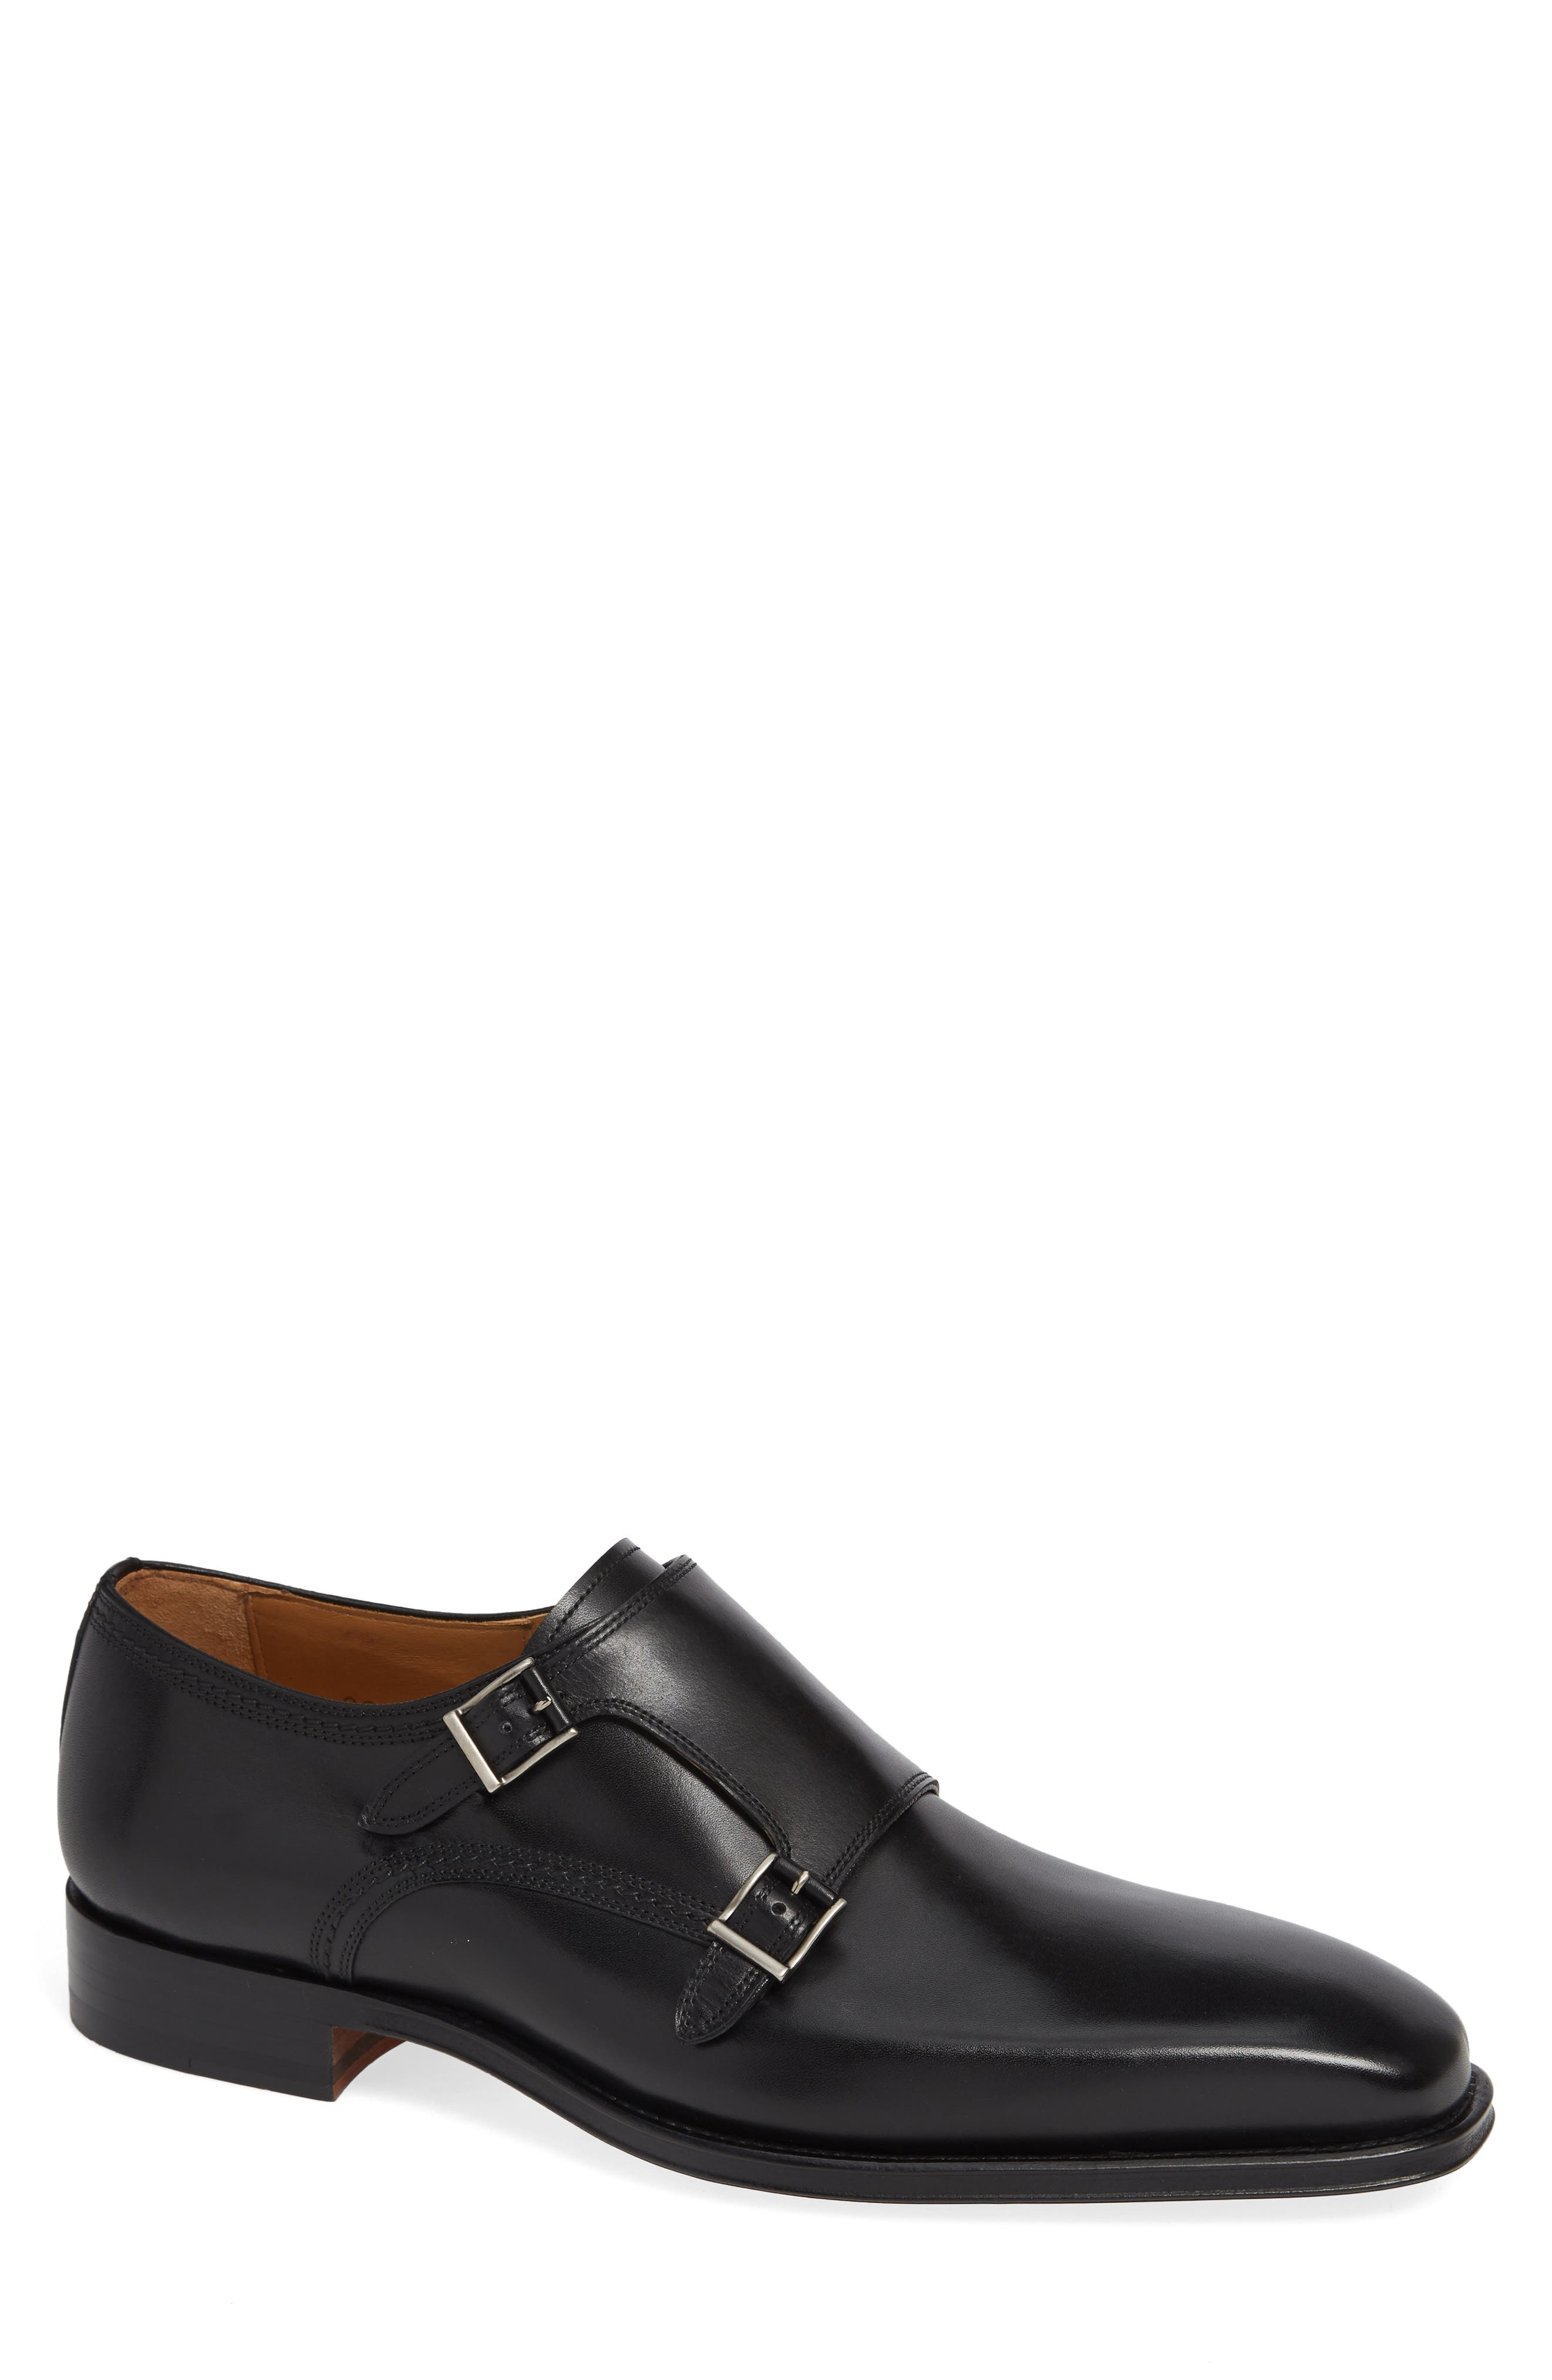 Landon Double Strap Monk Shoe, Main, color, 001